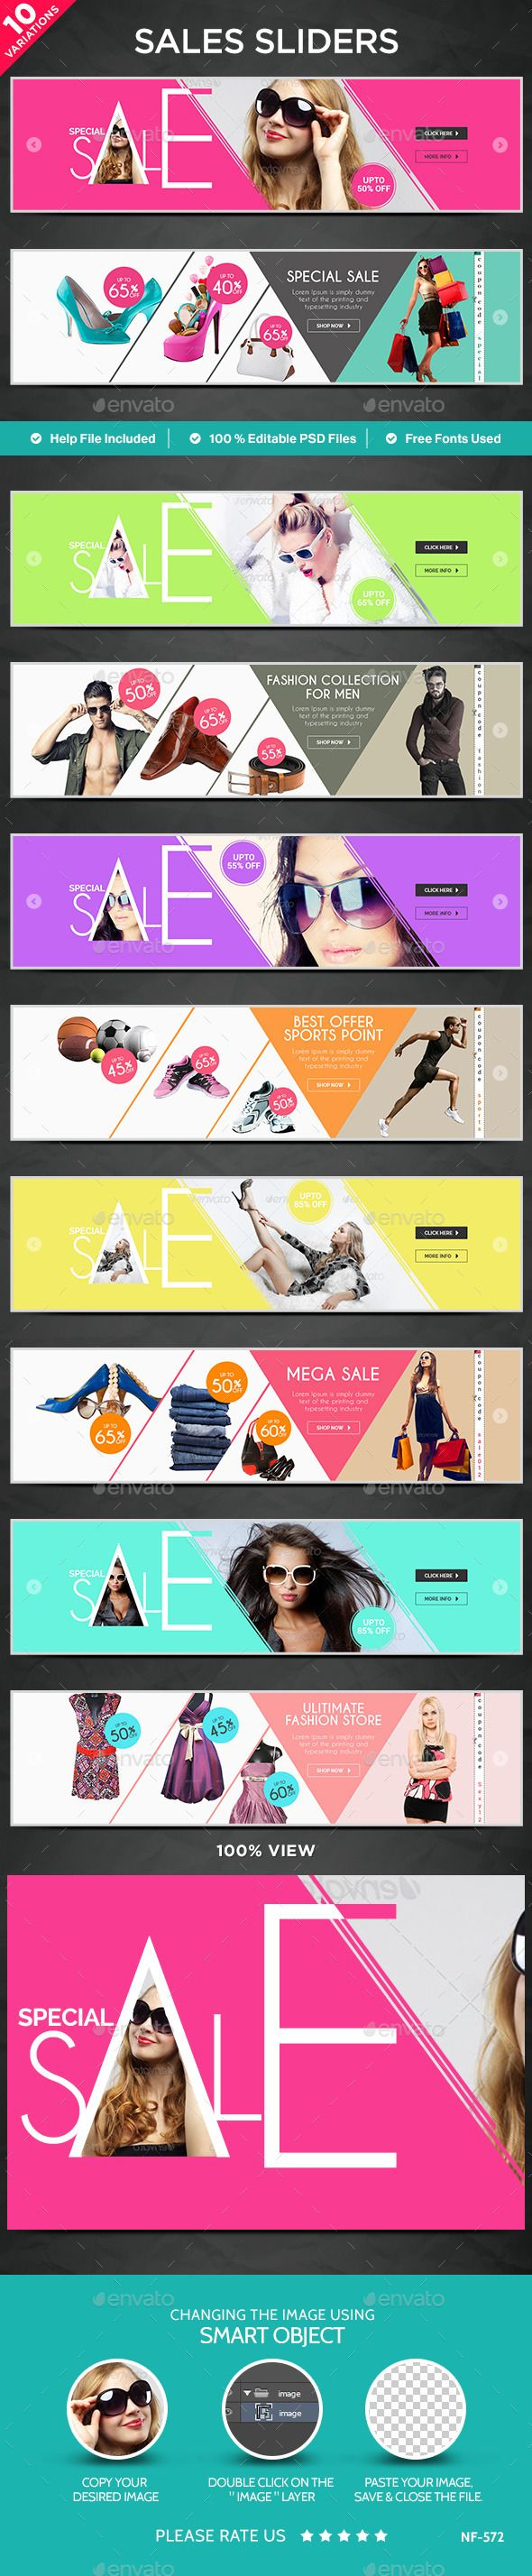 Sales Sliders - 10 Designs Template PSD. Download here: http://graphicriver.net/item/sales-sliders-10-designs/12508501?ref=ksioks